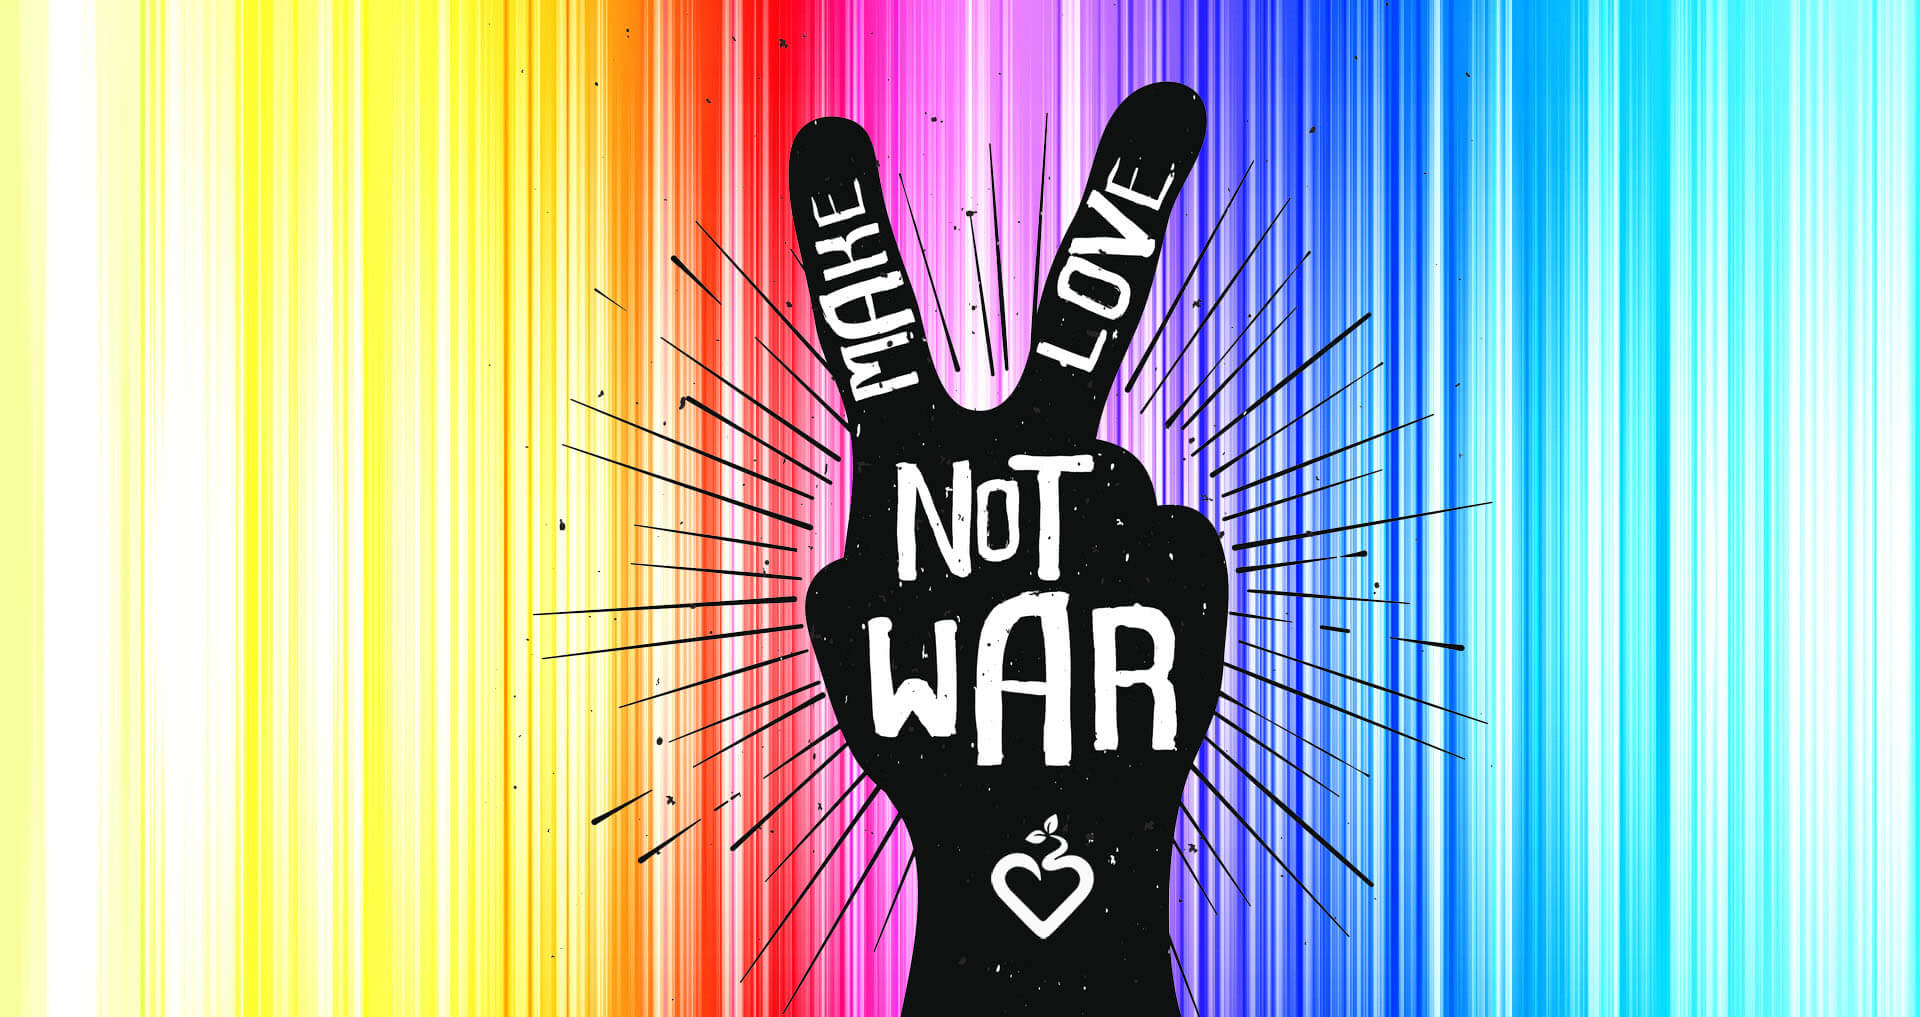 Make Love Not War social media campaign found with the hashtag #MakeLoveNotWar